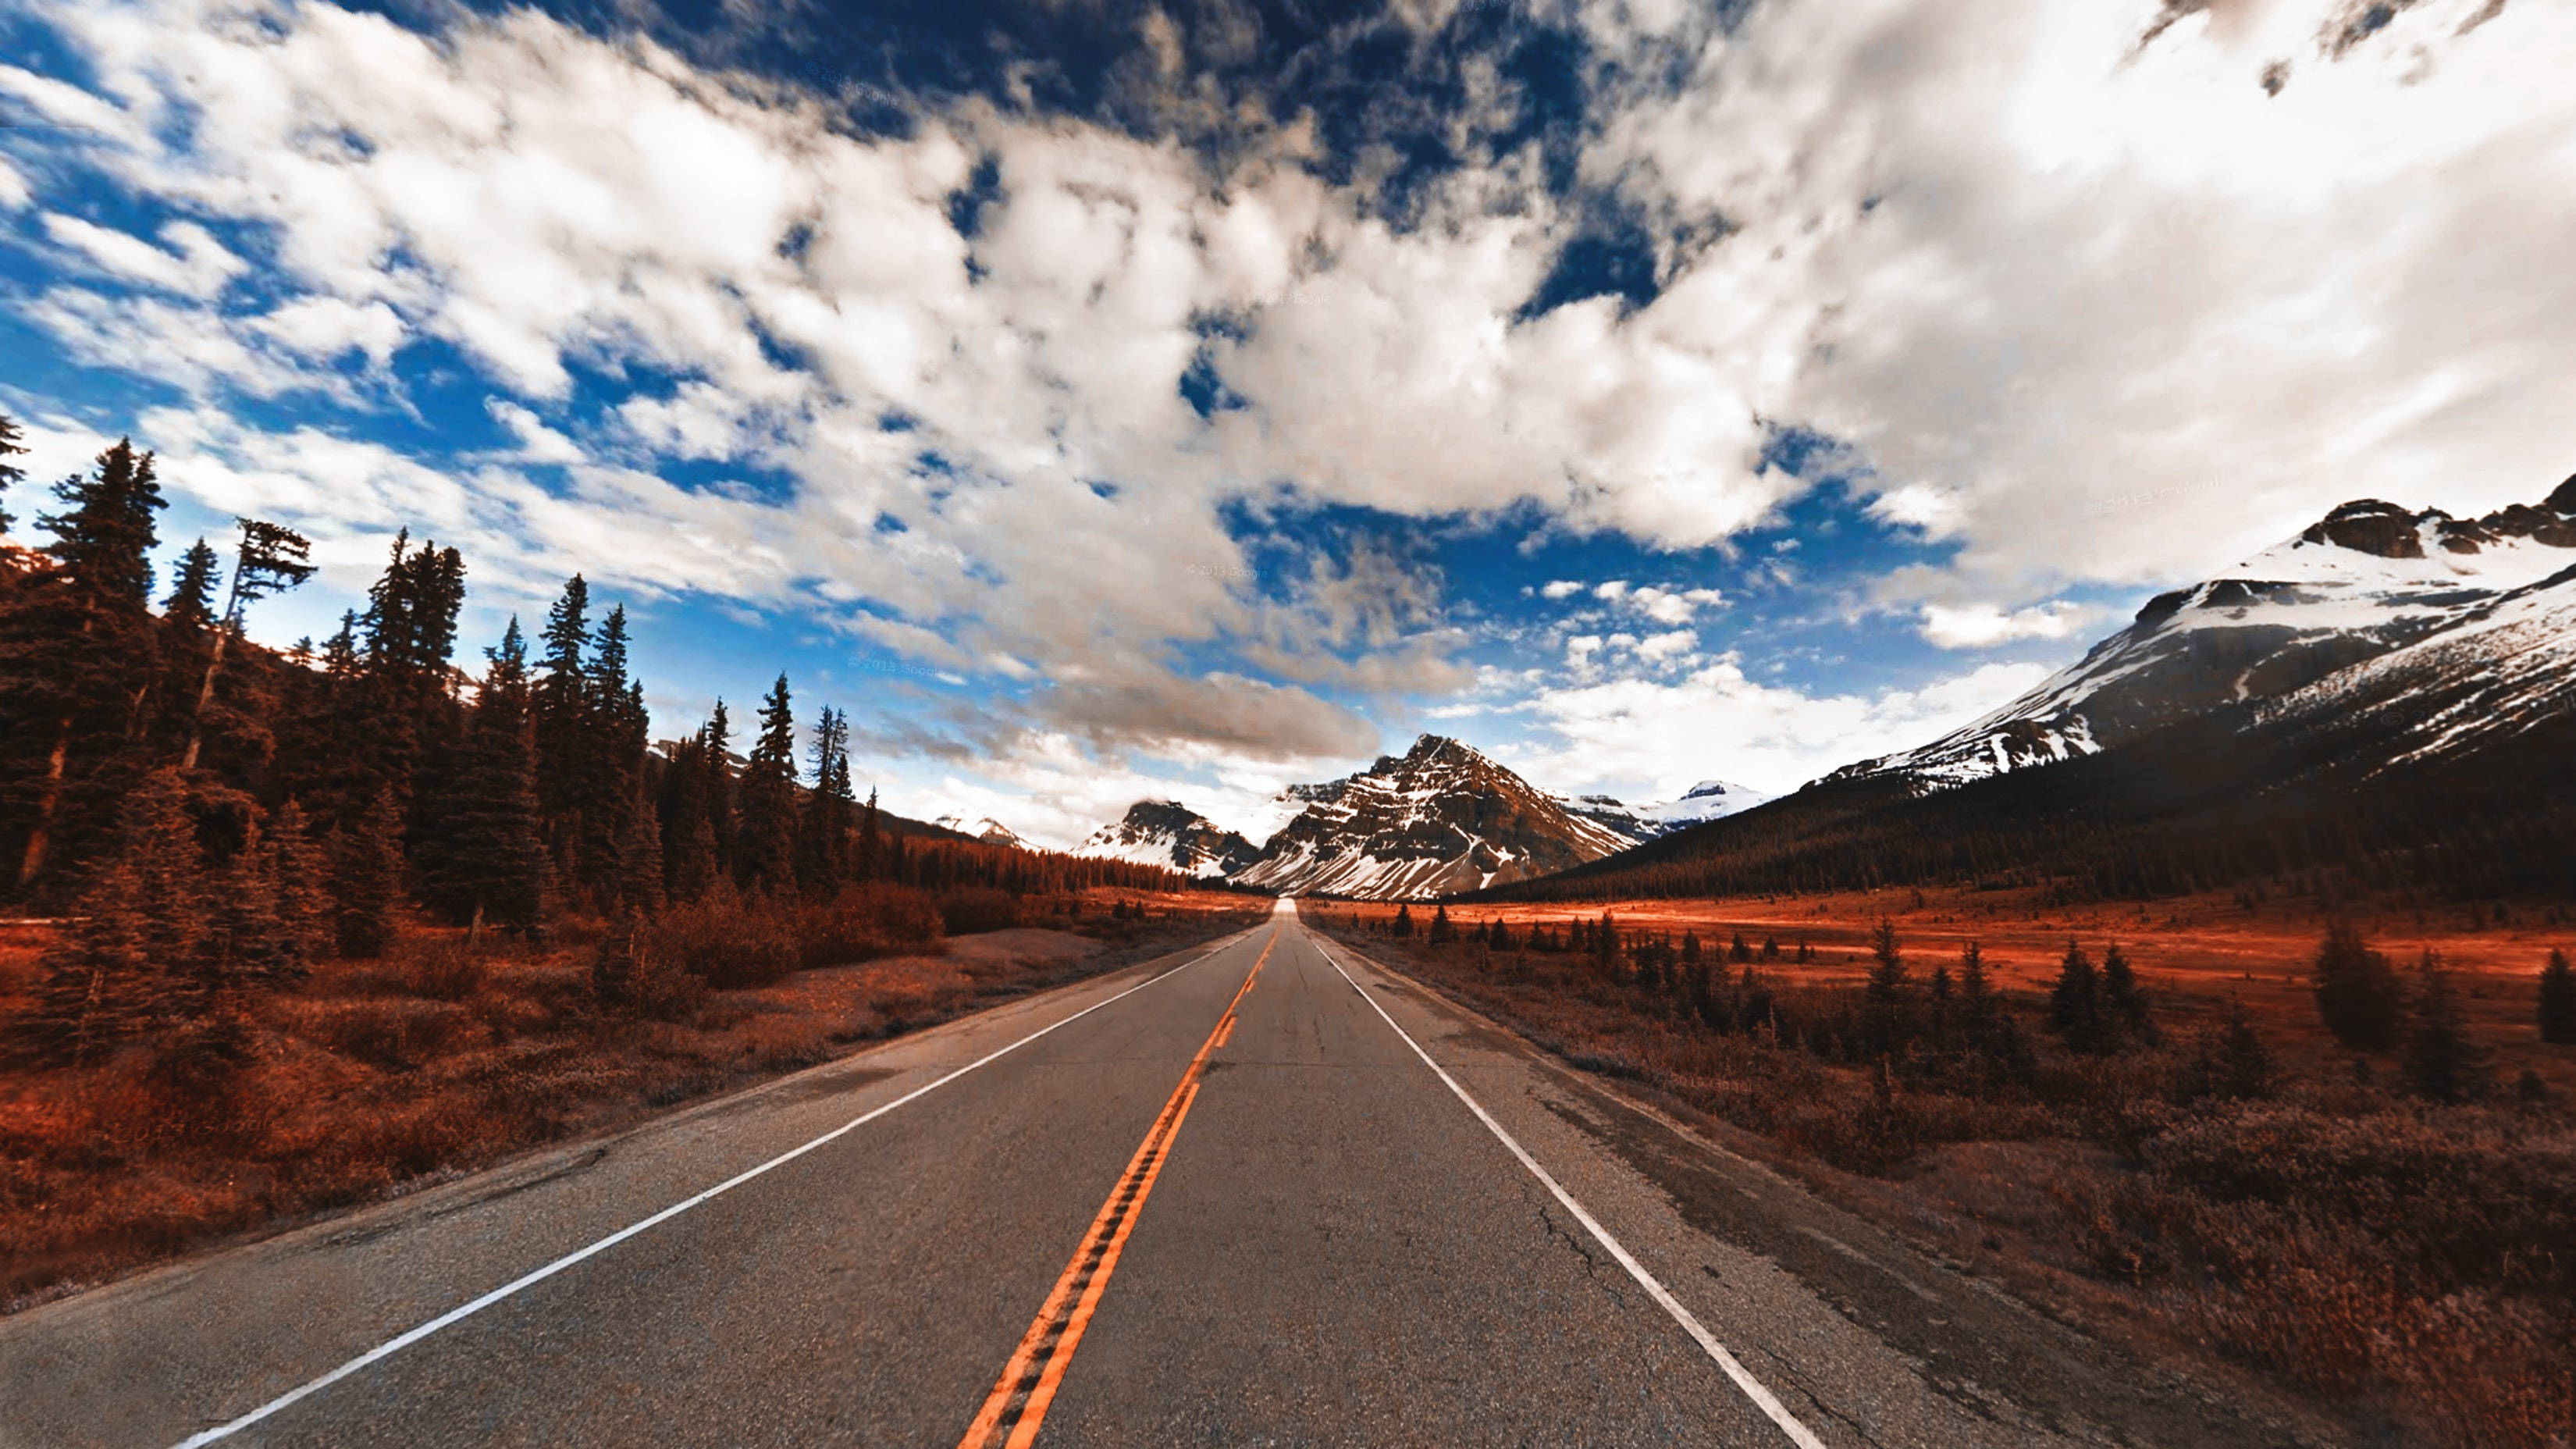 A road in Alberta surrounded by snowcapped mountains, blue sky, and clouds